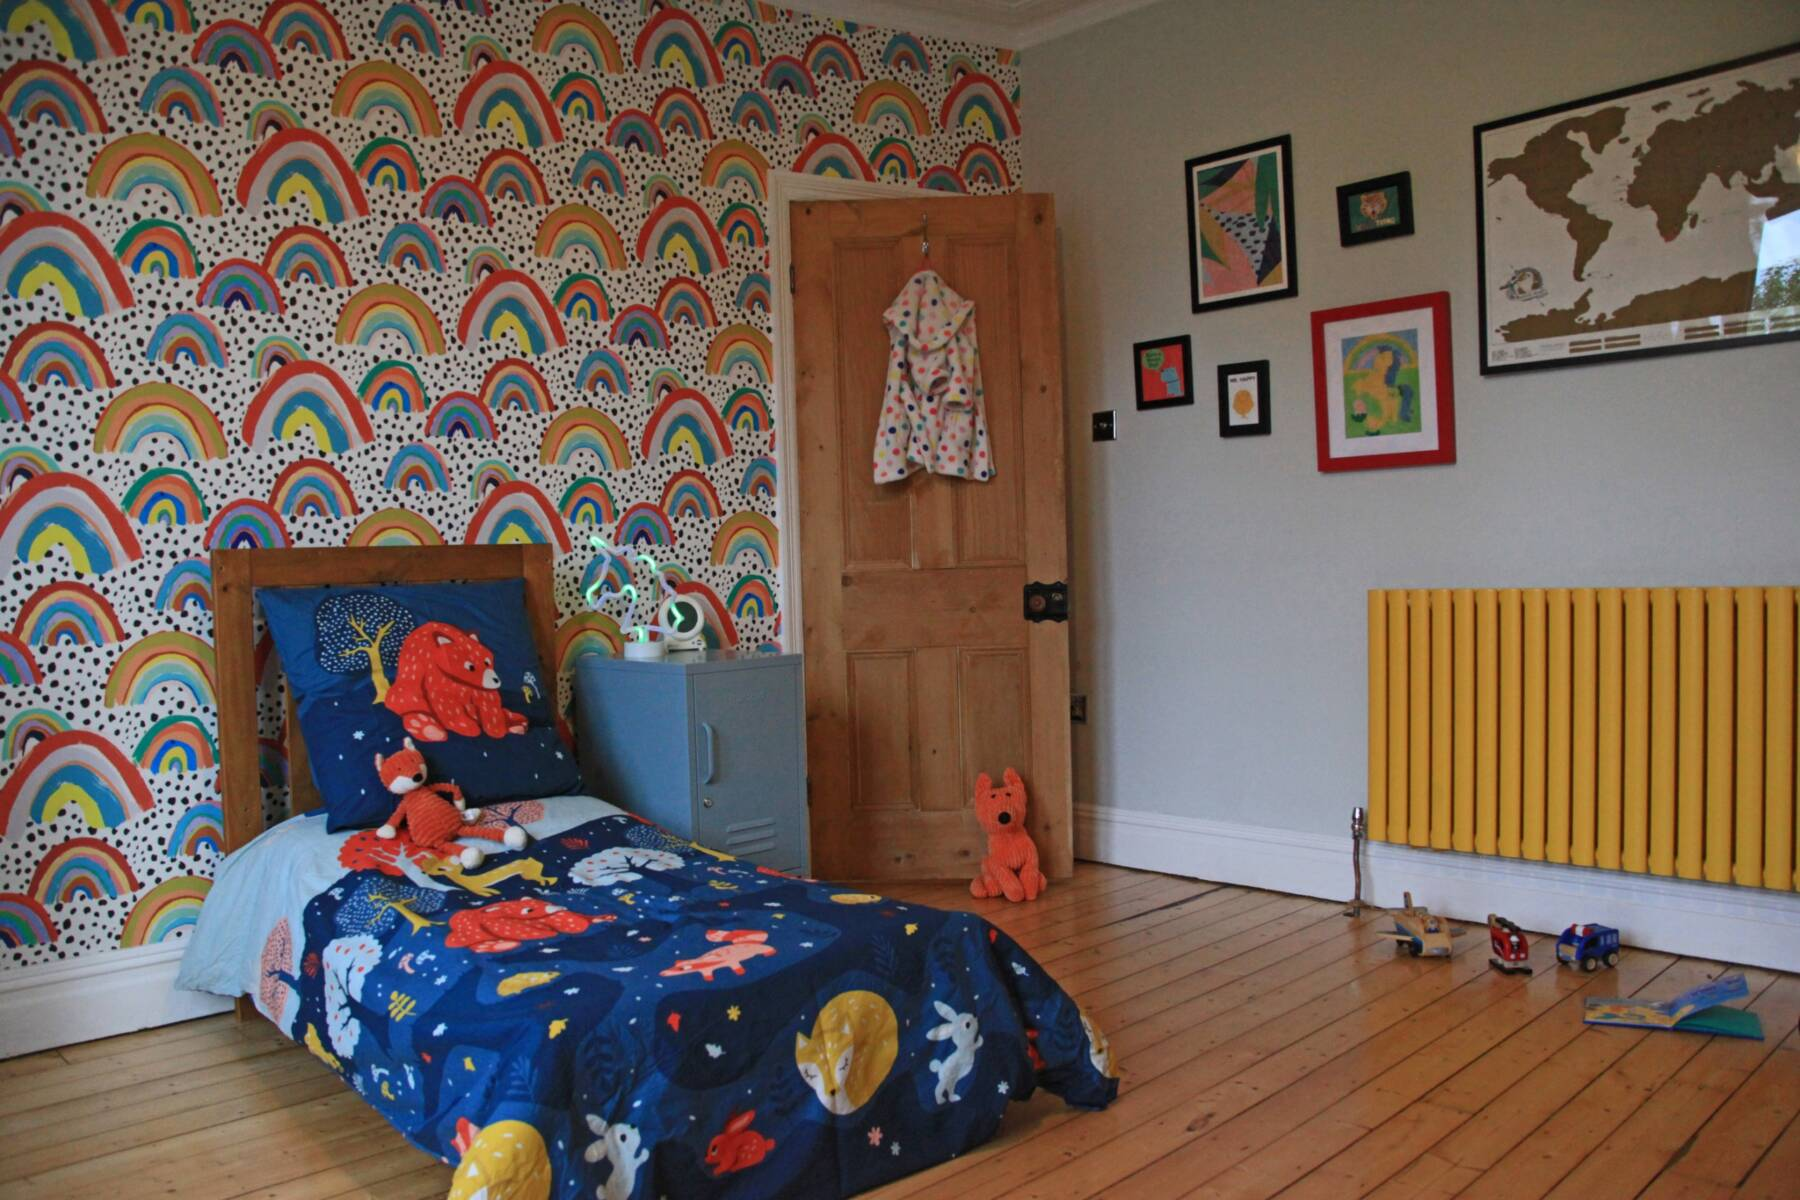 yellow radiator in a children's bedroom